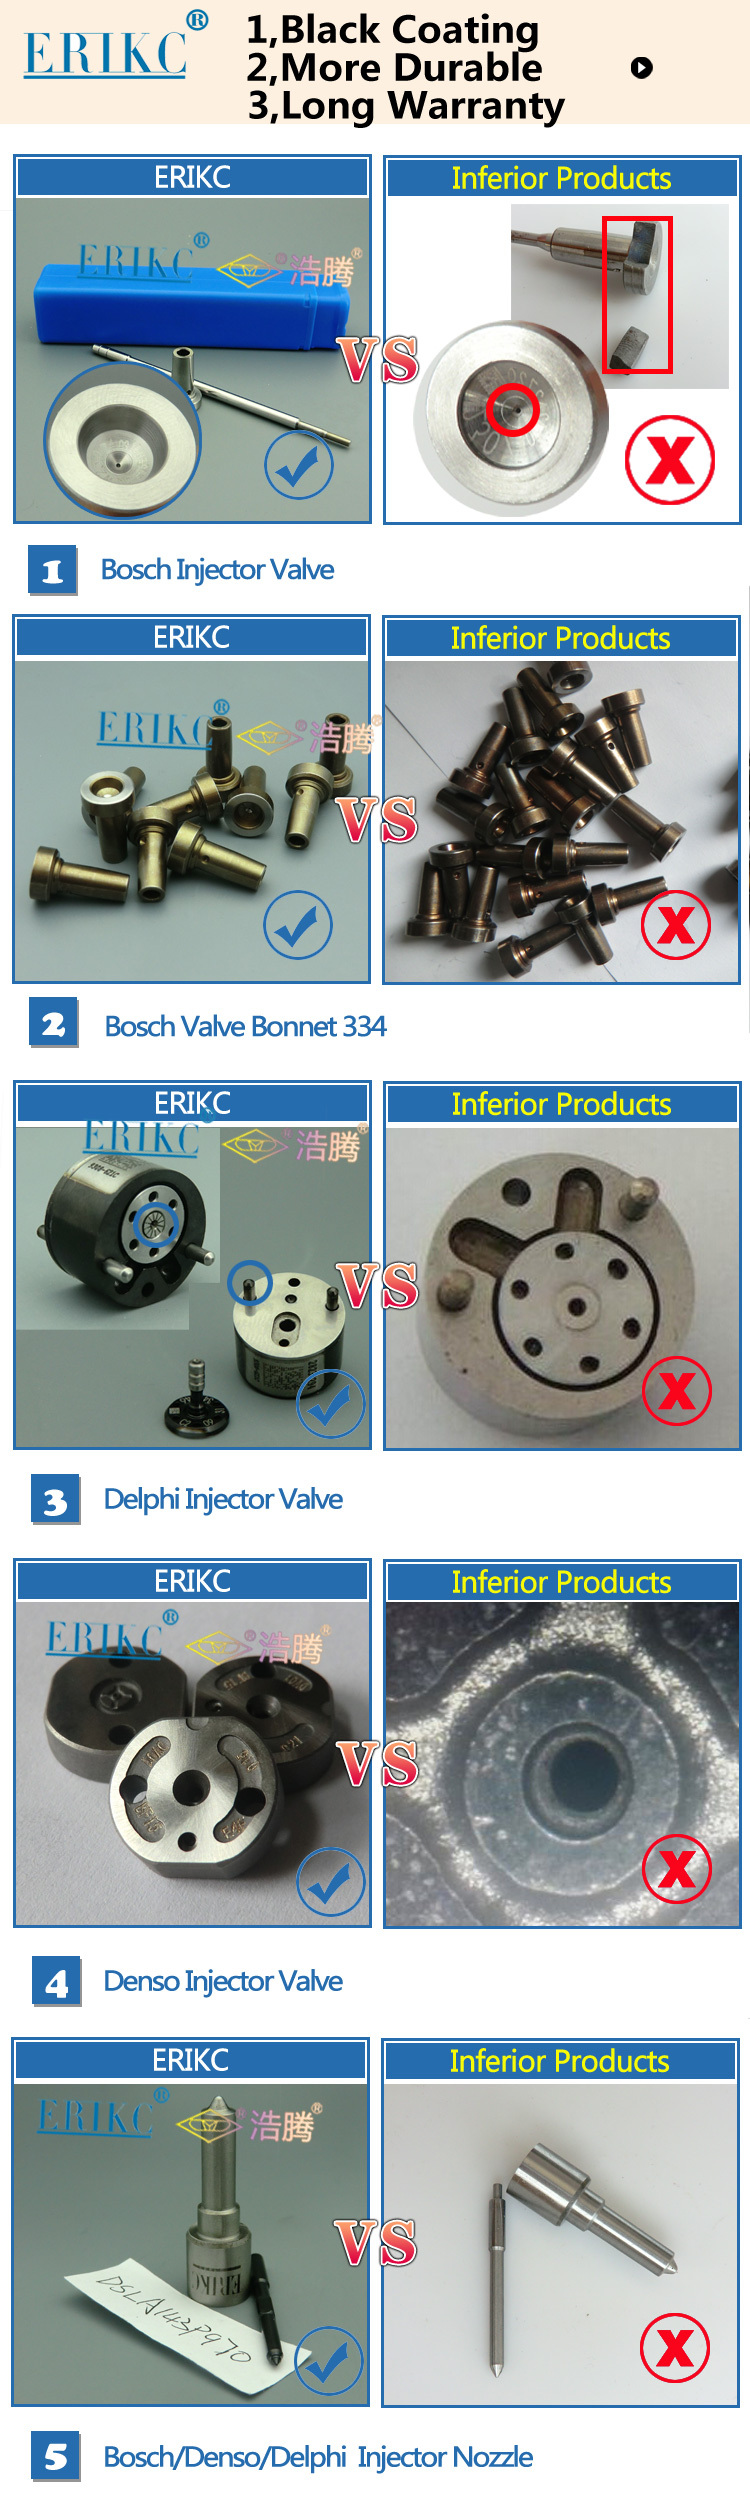 095000 6132 Denso common rail injector system control valve to injector 095000-6132 8-97376270-1